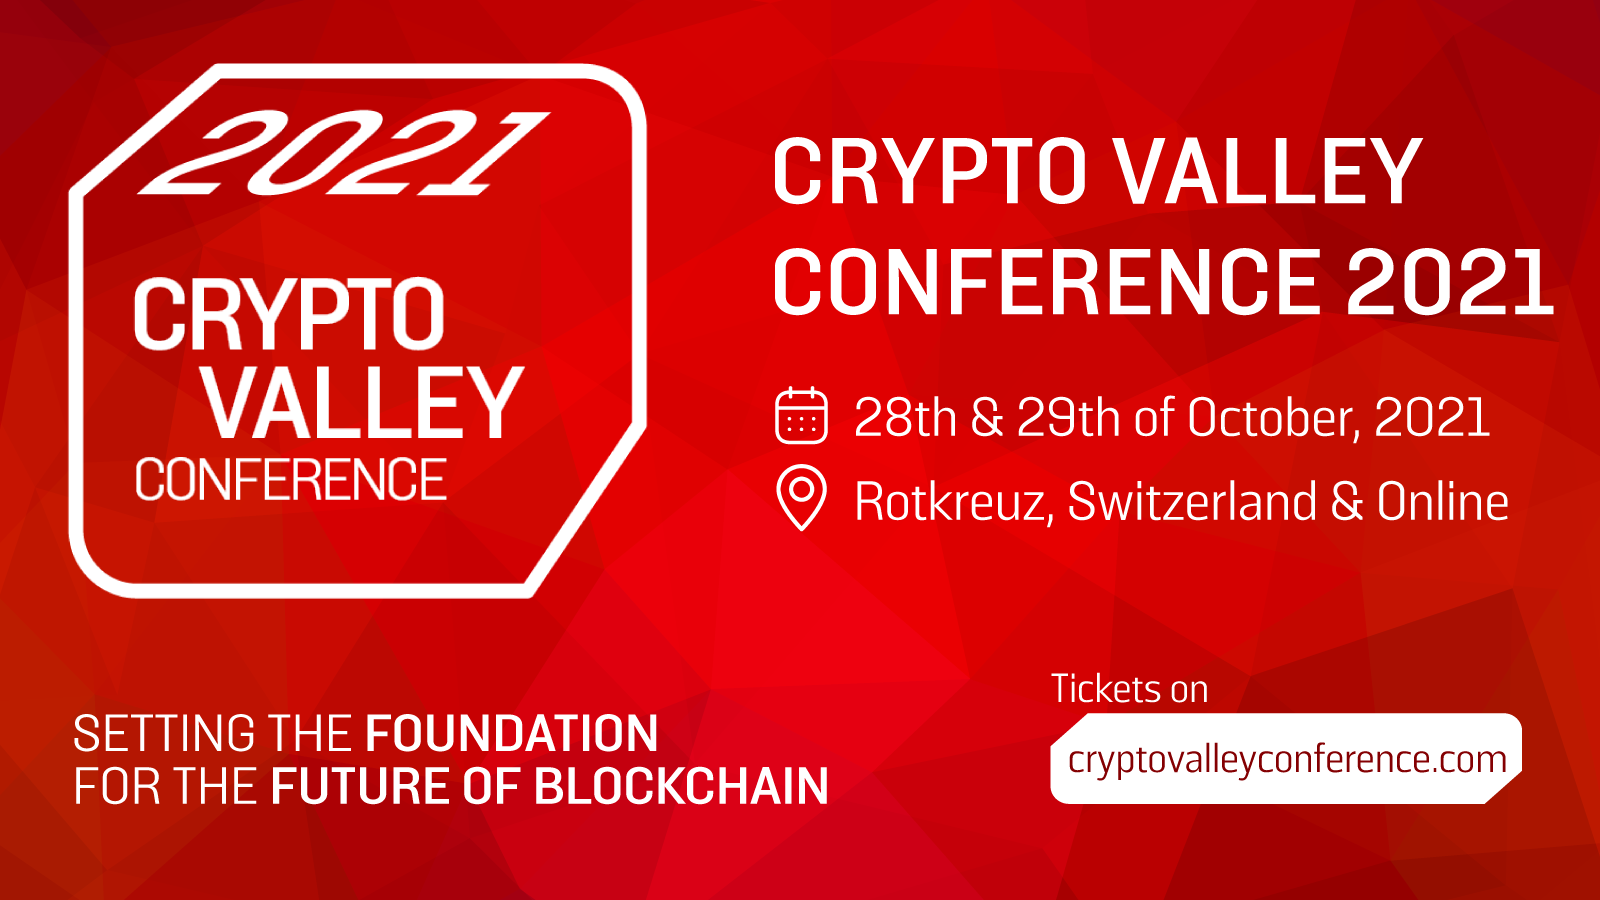 Crypto Valley Conference 2021